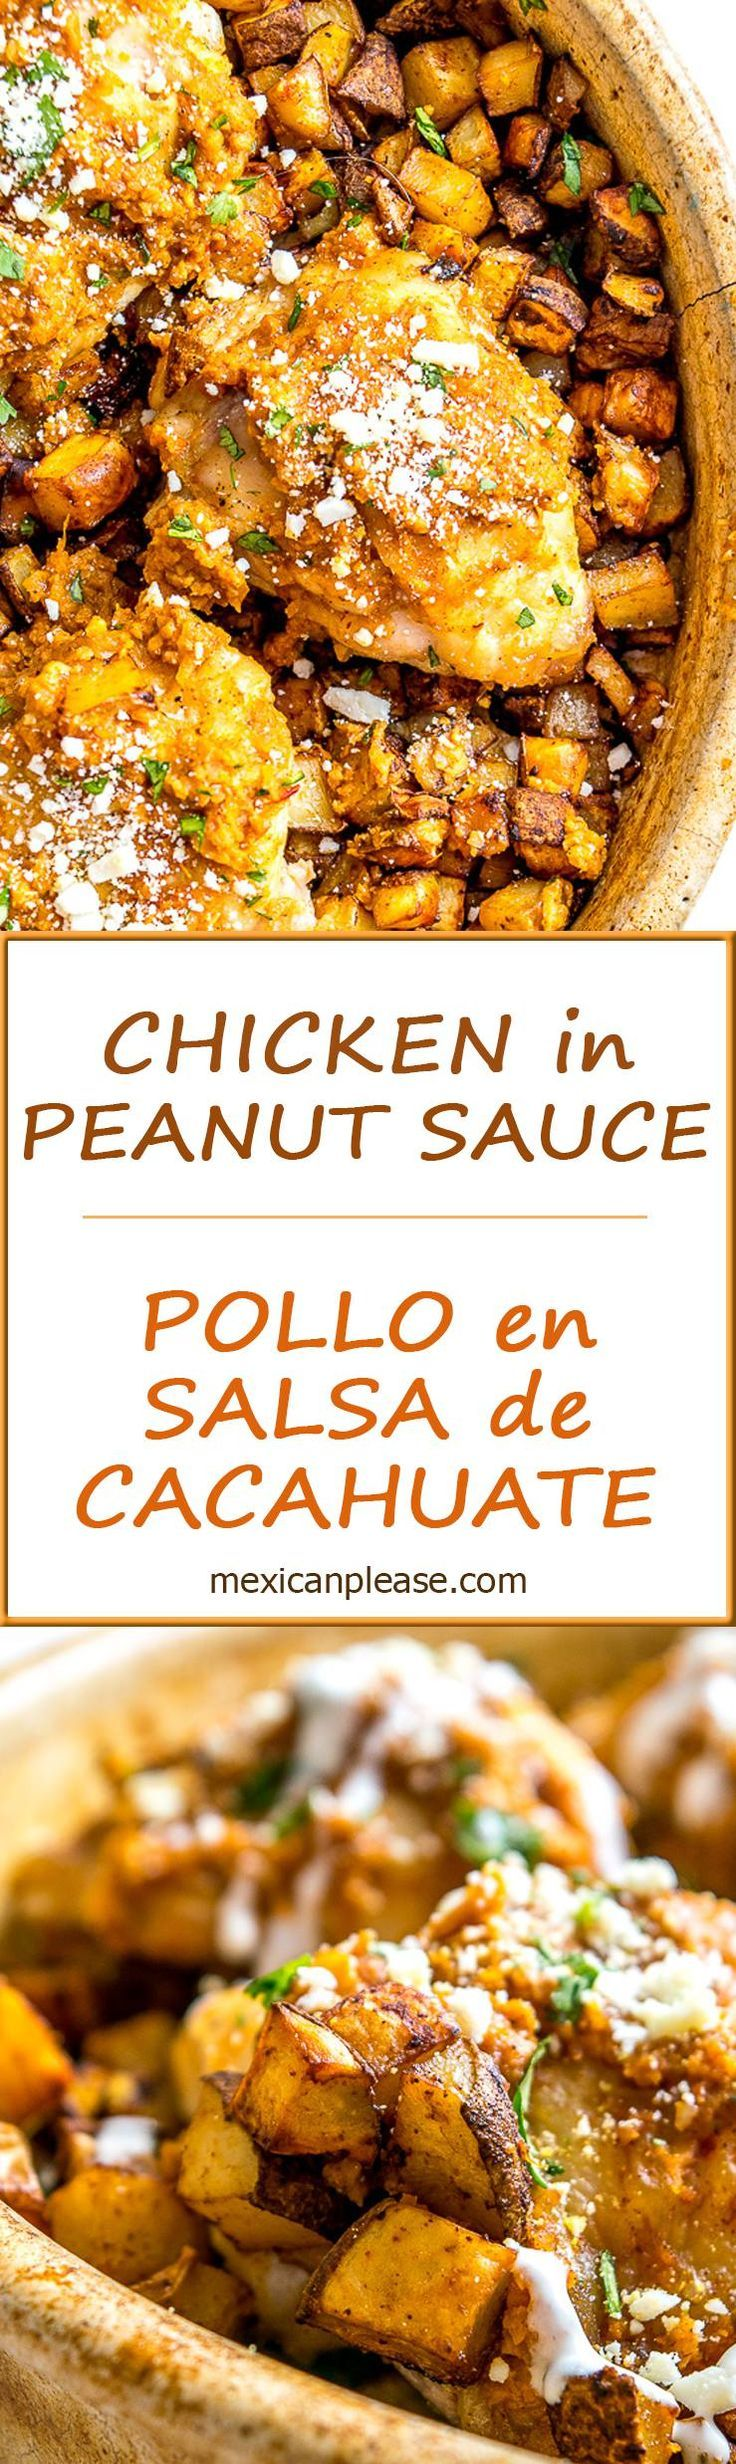 Chicken in Peanut Sauce --combine fresh roasted peanuts, a tomato chipotle base, a dash of cinnamon, and you've got a rustic delight you can't find anywhere else in the world.   So good!  http://mexicanplease.com